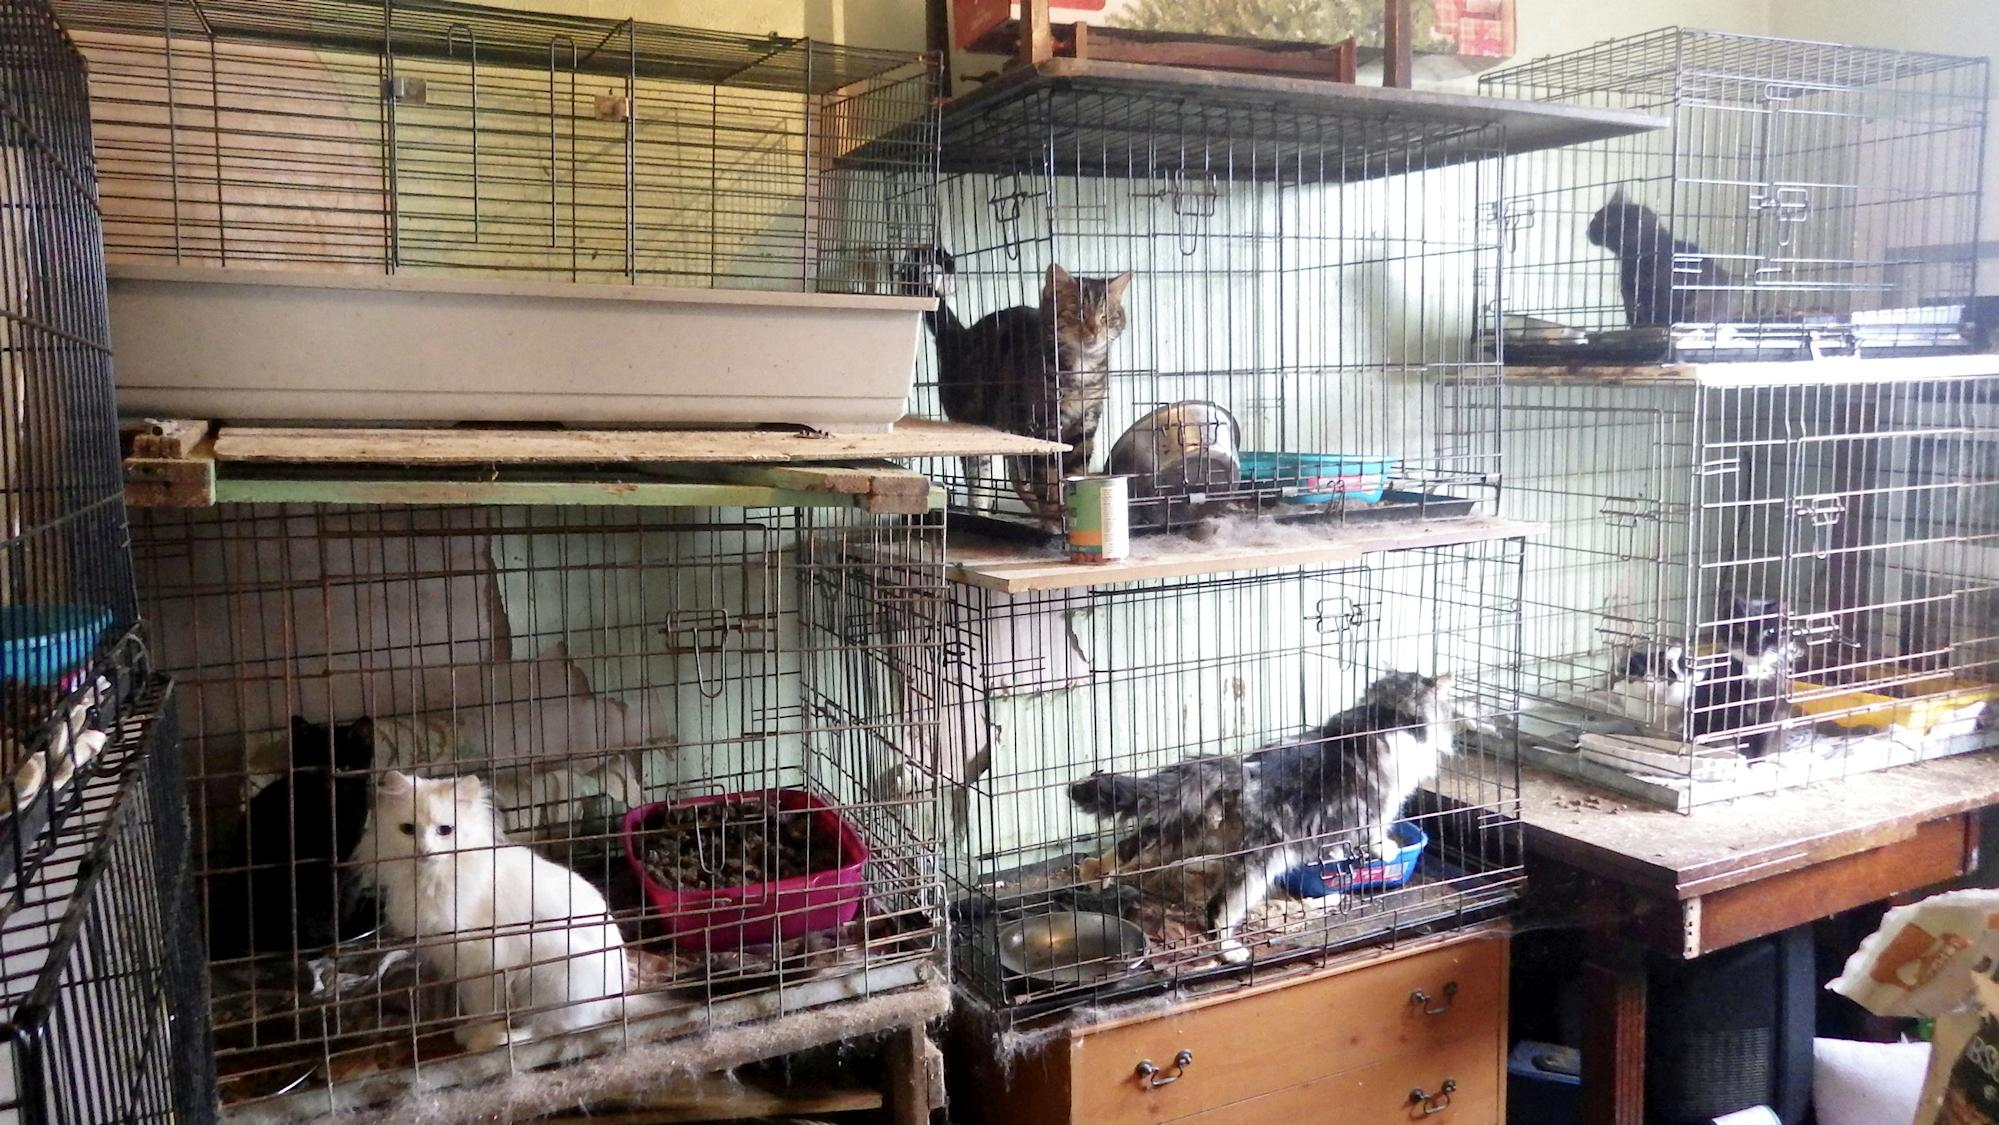 Couple banned from keeping animals after cats found locked in filthy cages